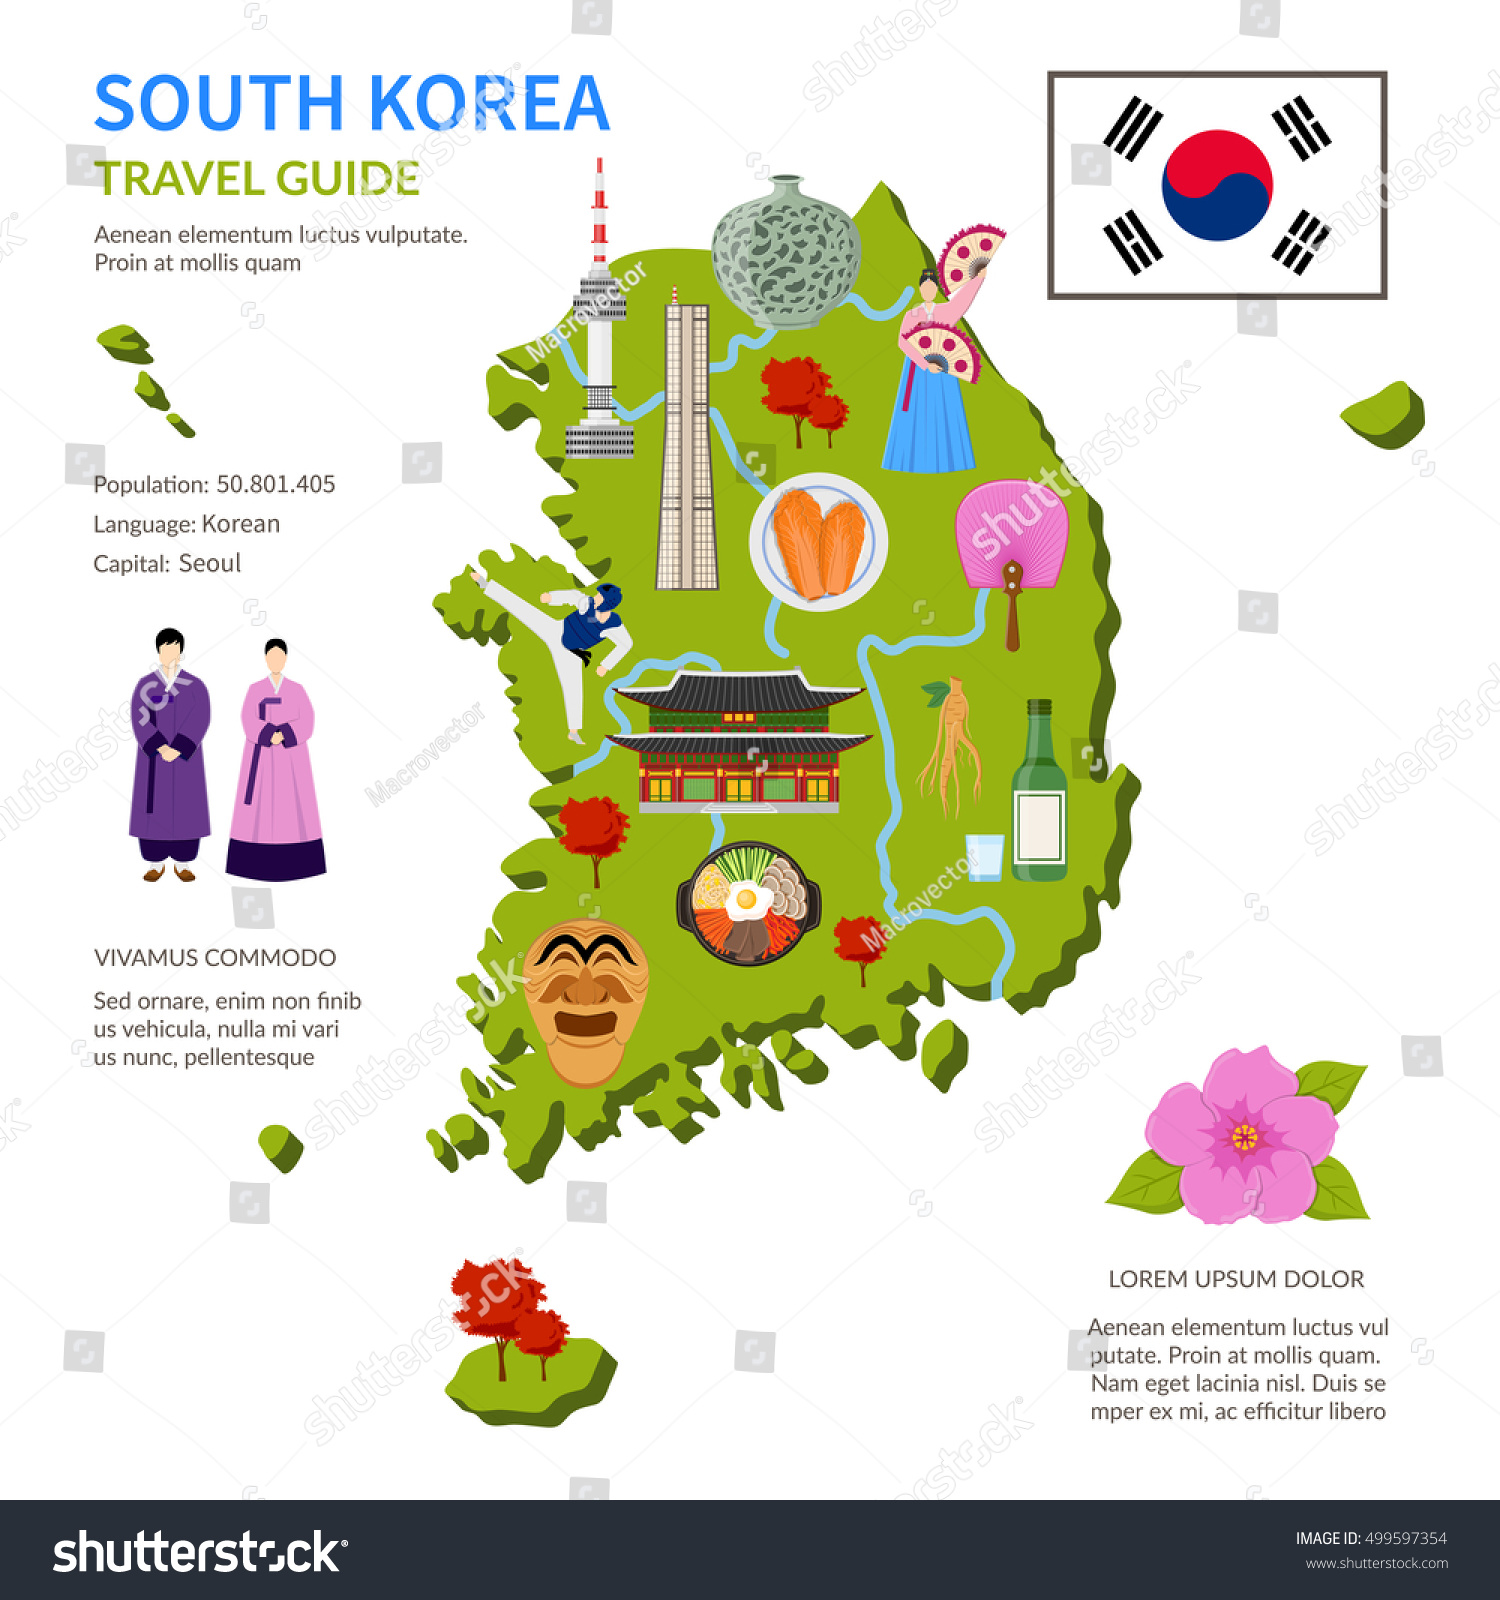 South Korea Travel Guide For Tourists Flat Infographic Poster With Country Map Landmarks And Cultural Symbols